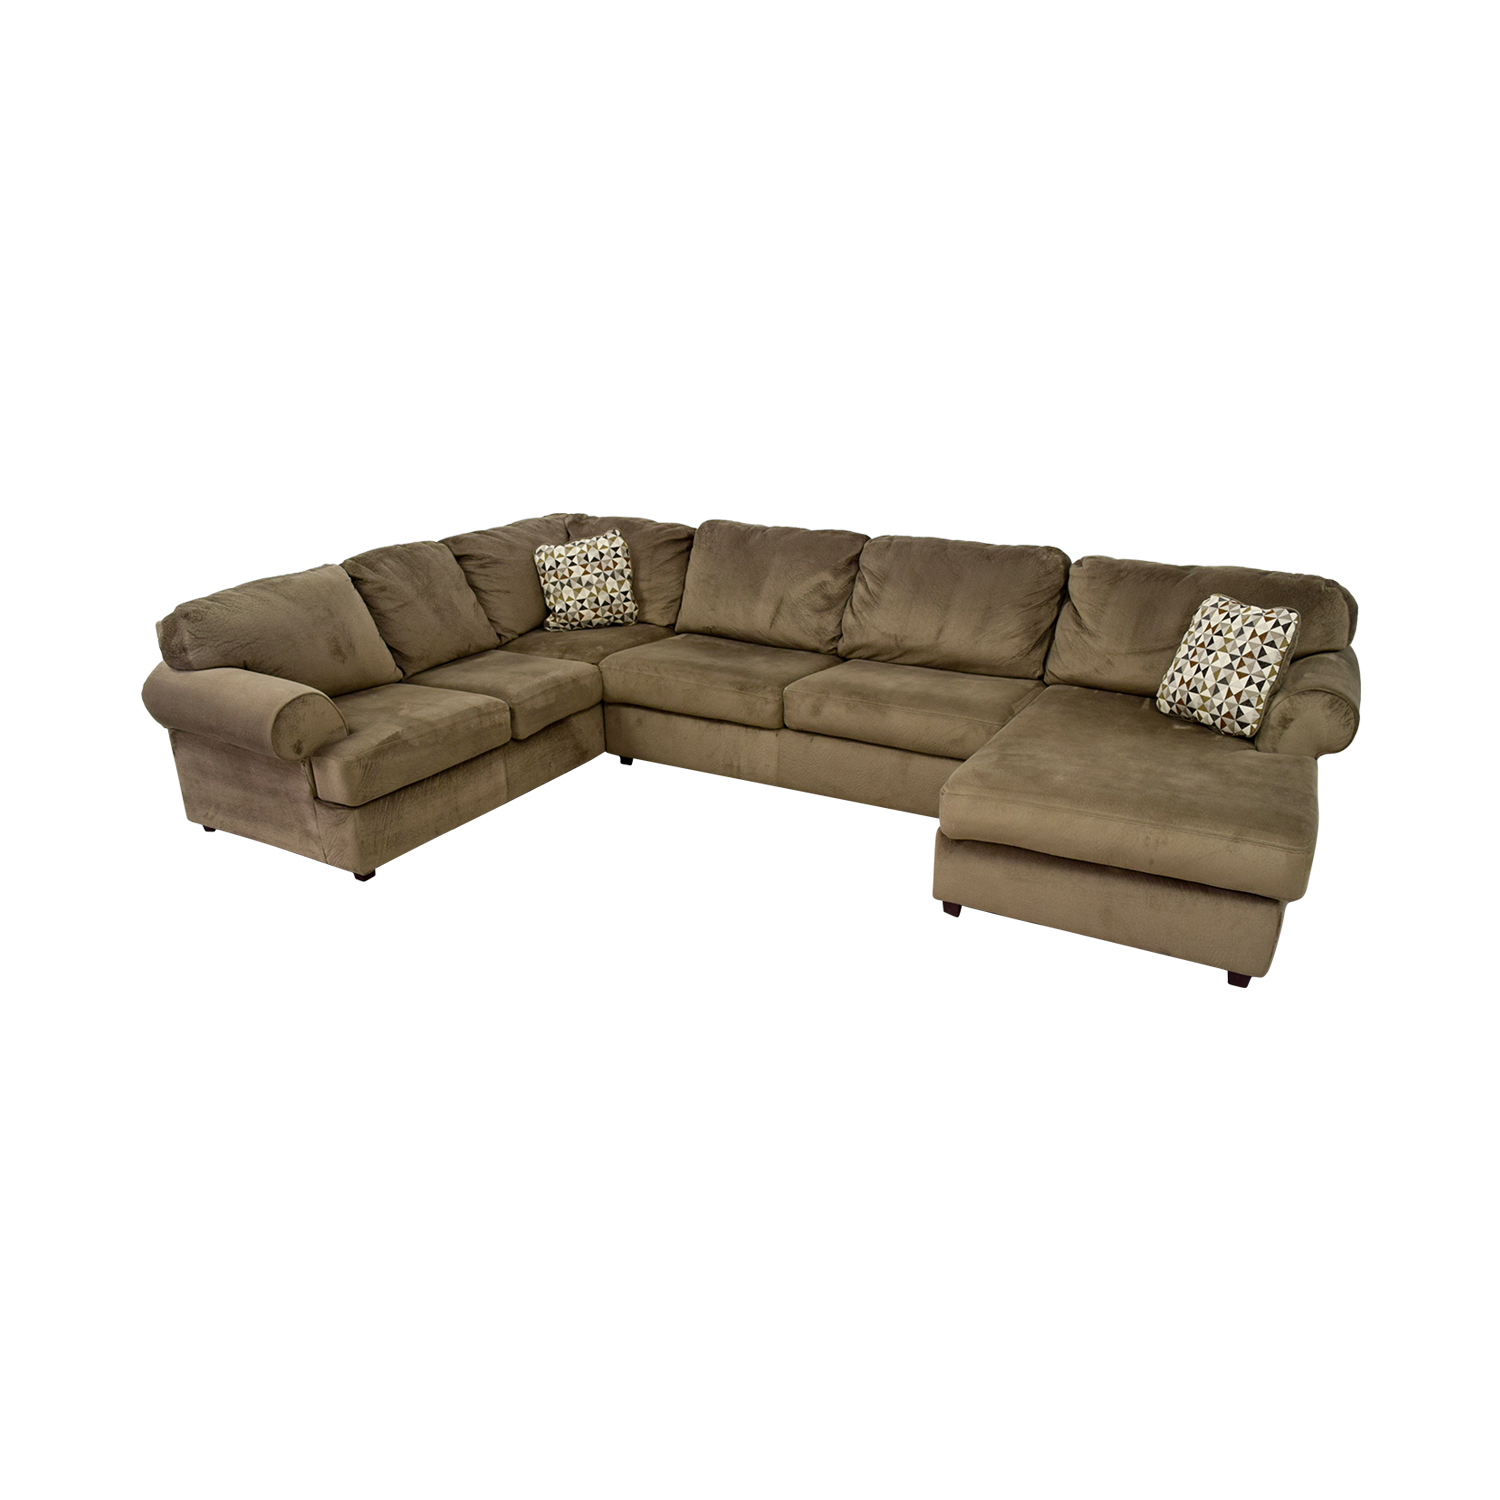 Ashley Furniture Jessa Place Sectional Dimensions